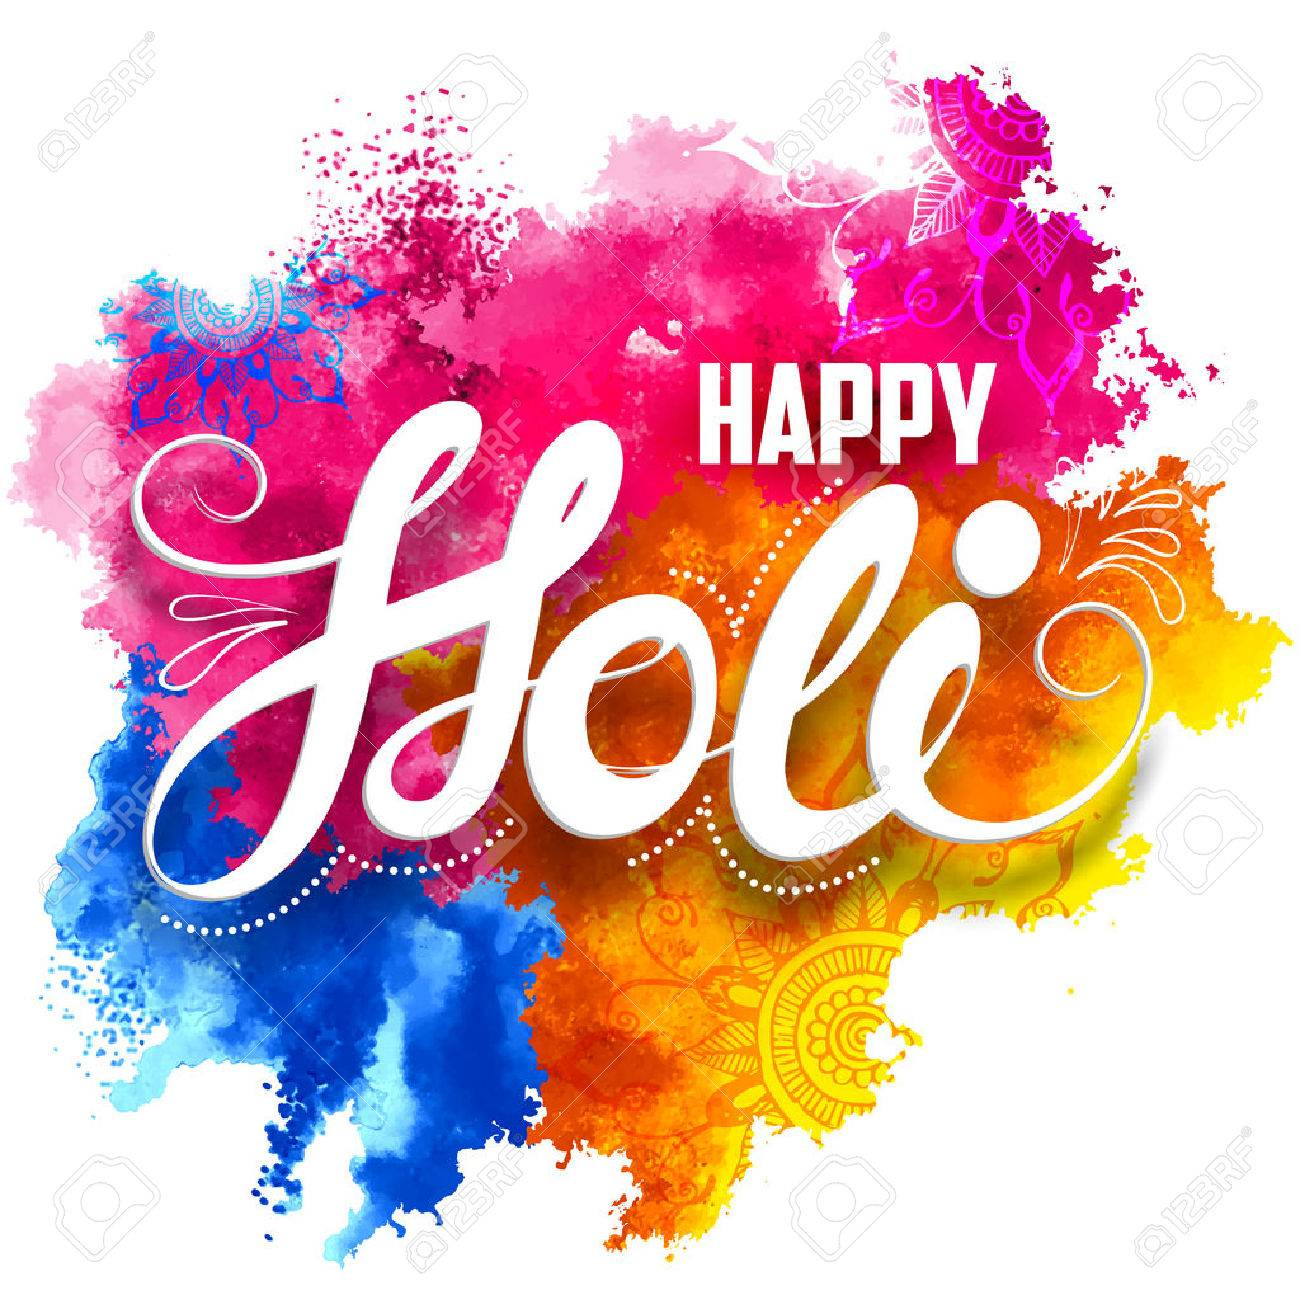 illustration of abstract colorful Happy Holi background - 53412213